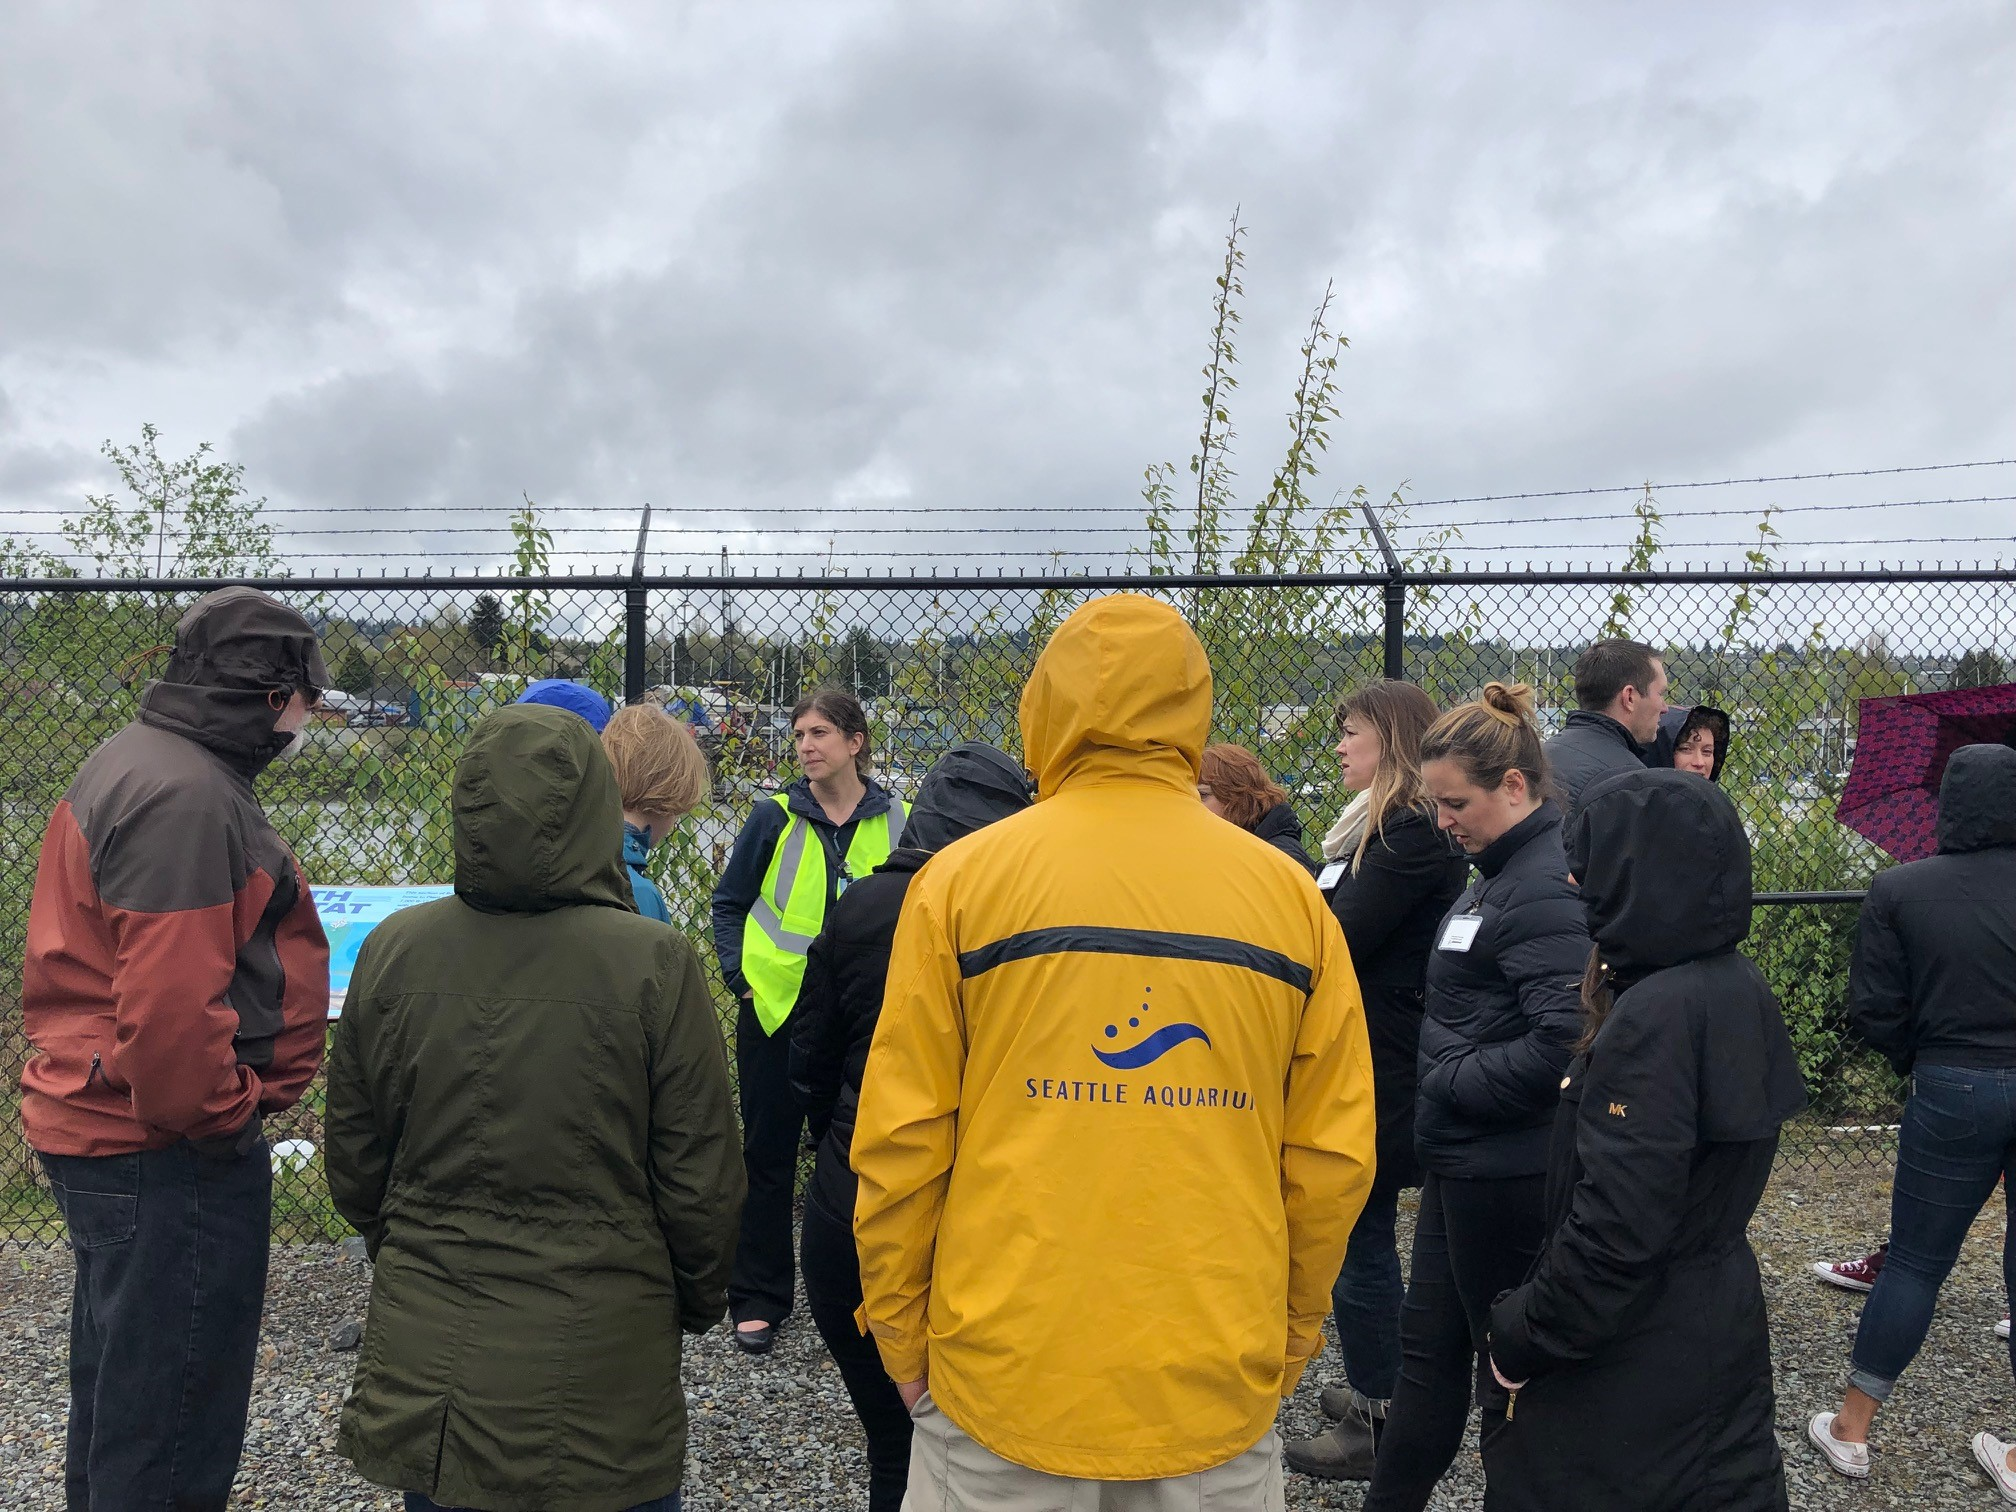 Before embarking on this tour of the Duwamish, Katie Moxley, Manager, Boeing Company Environmental Remediation, gave an overview of the restoration along their property along the Duwamish.